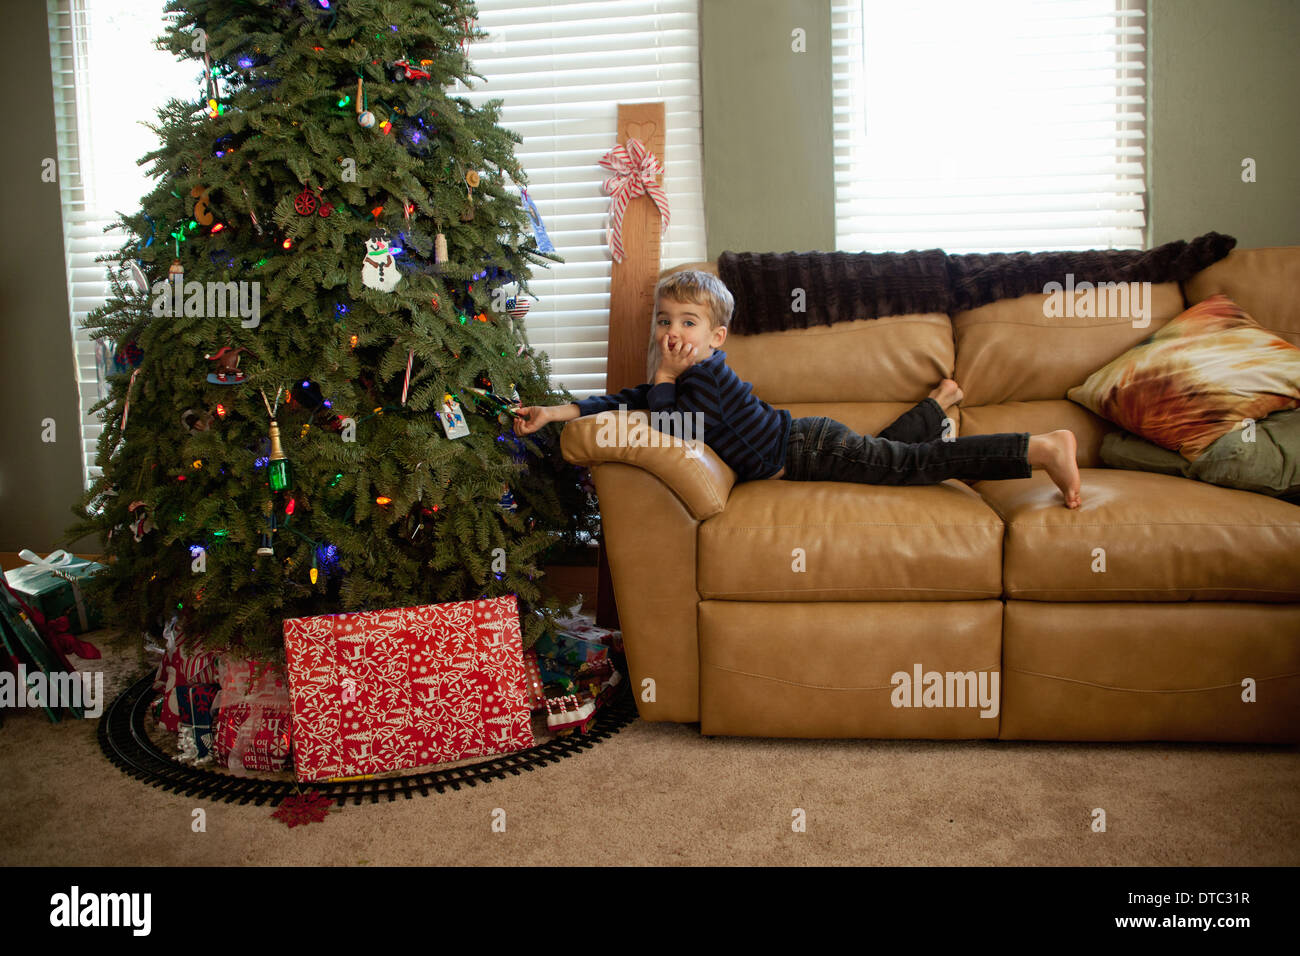 Excited male toddler looking at decorations on xmas tree - Stock Image